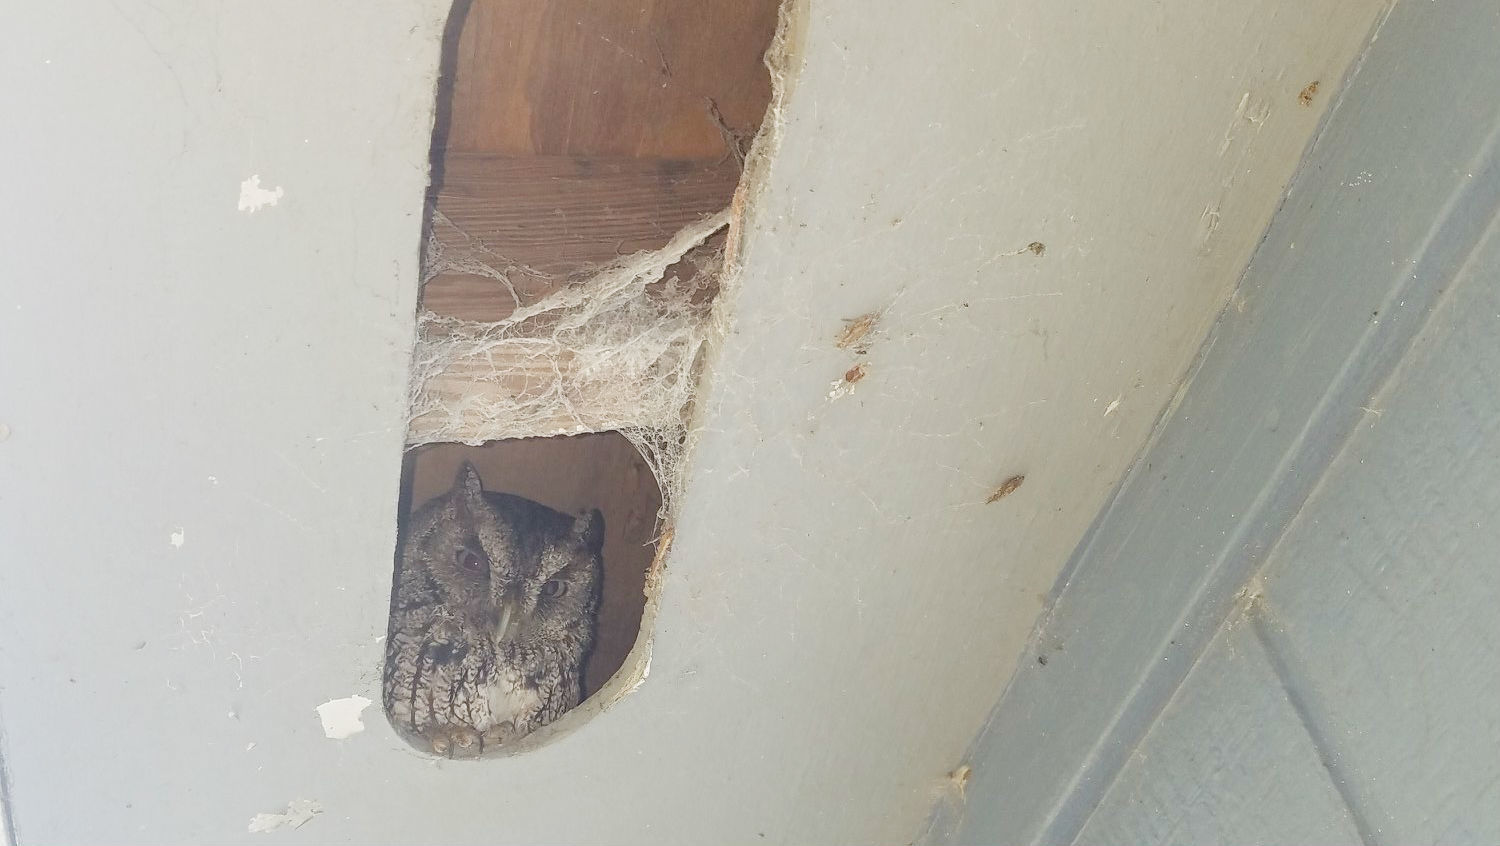 Tiny owl making itself at home delays Florida couple's renovations